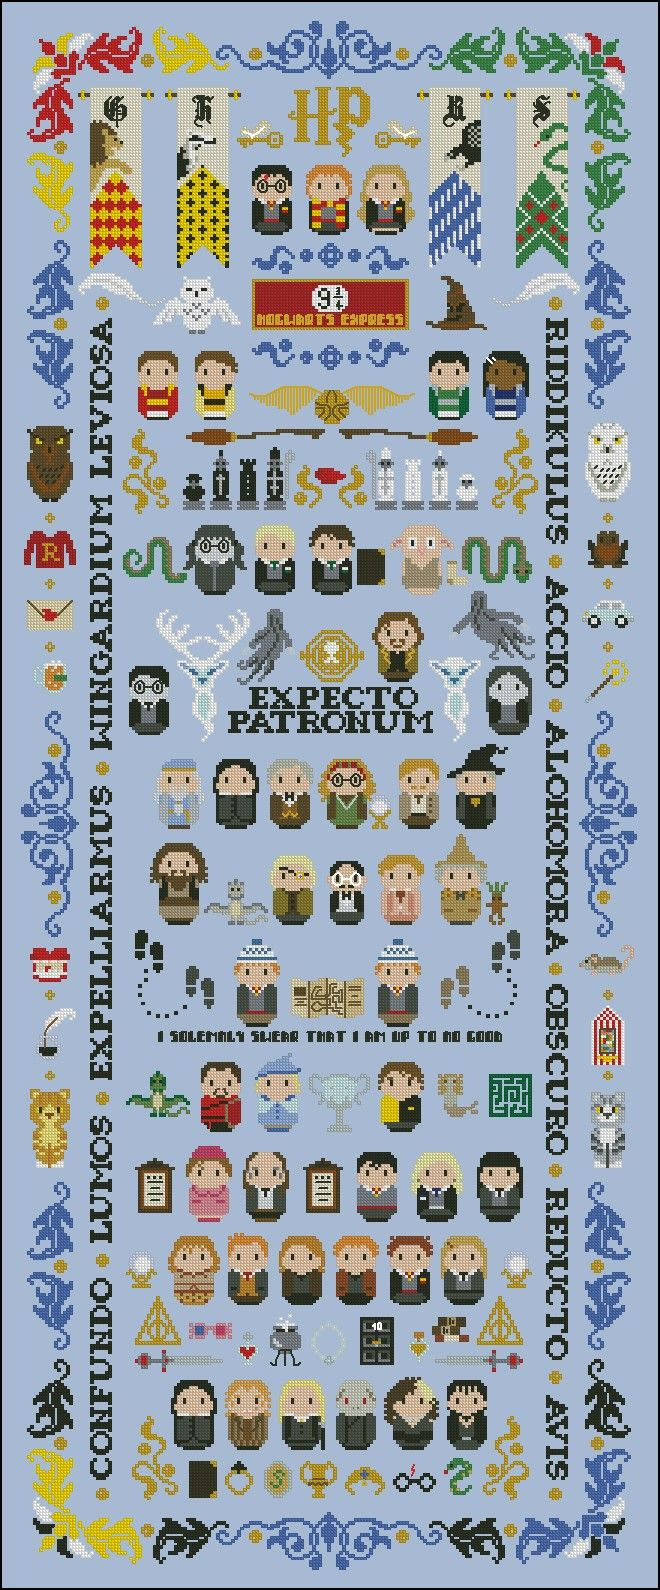 The definitive pattern for all the Harry Potter fans! This pattern includes all the Harry Potter patterns available in the shop, plus a lot of new amazing and funny things! You will find all the seven books/movies in chronological order, with a series of